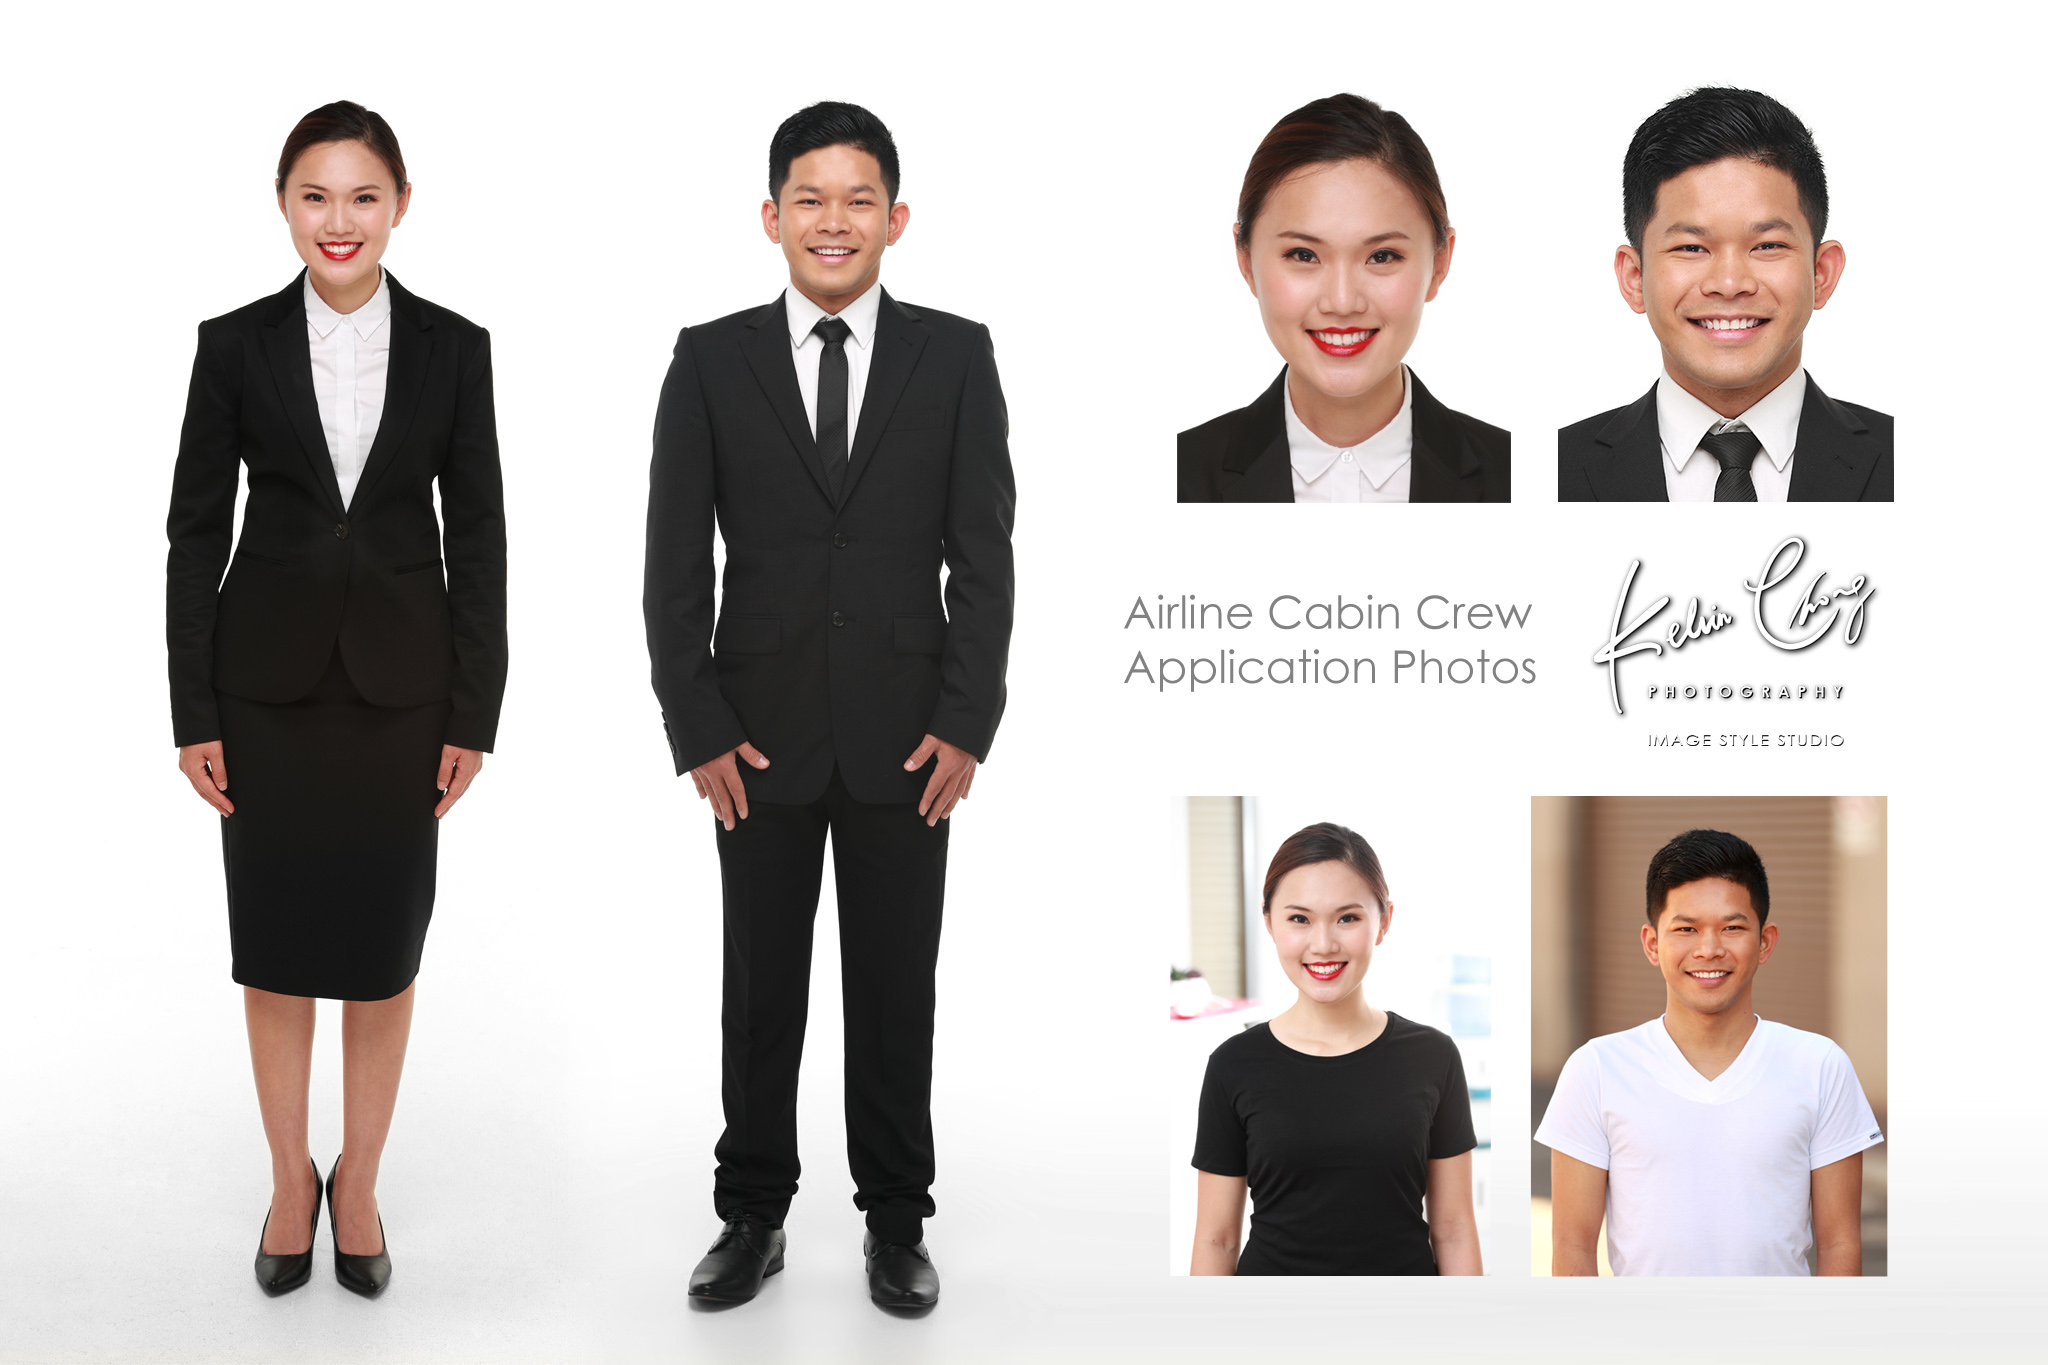 Interview Headshots for Cabin Crew